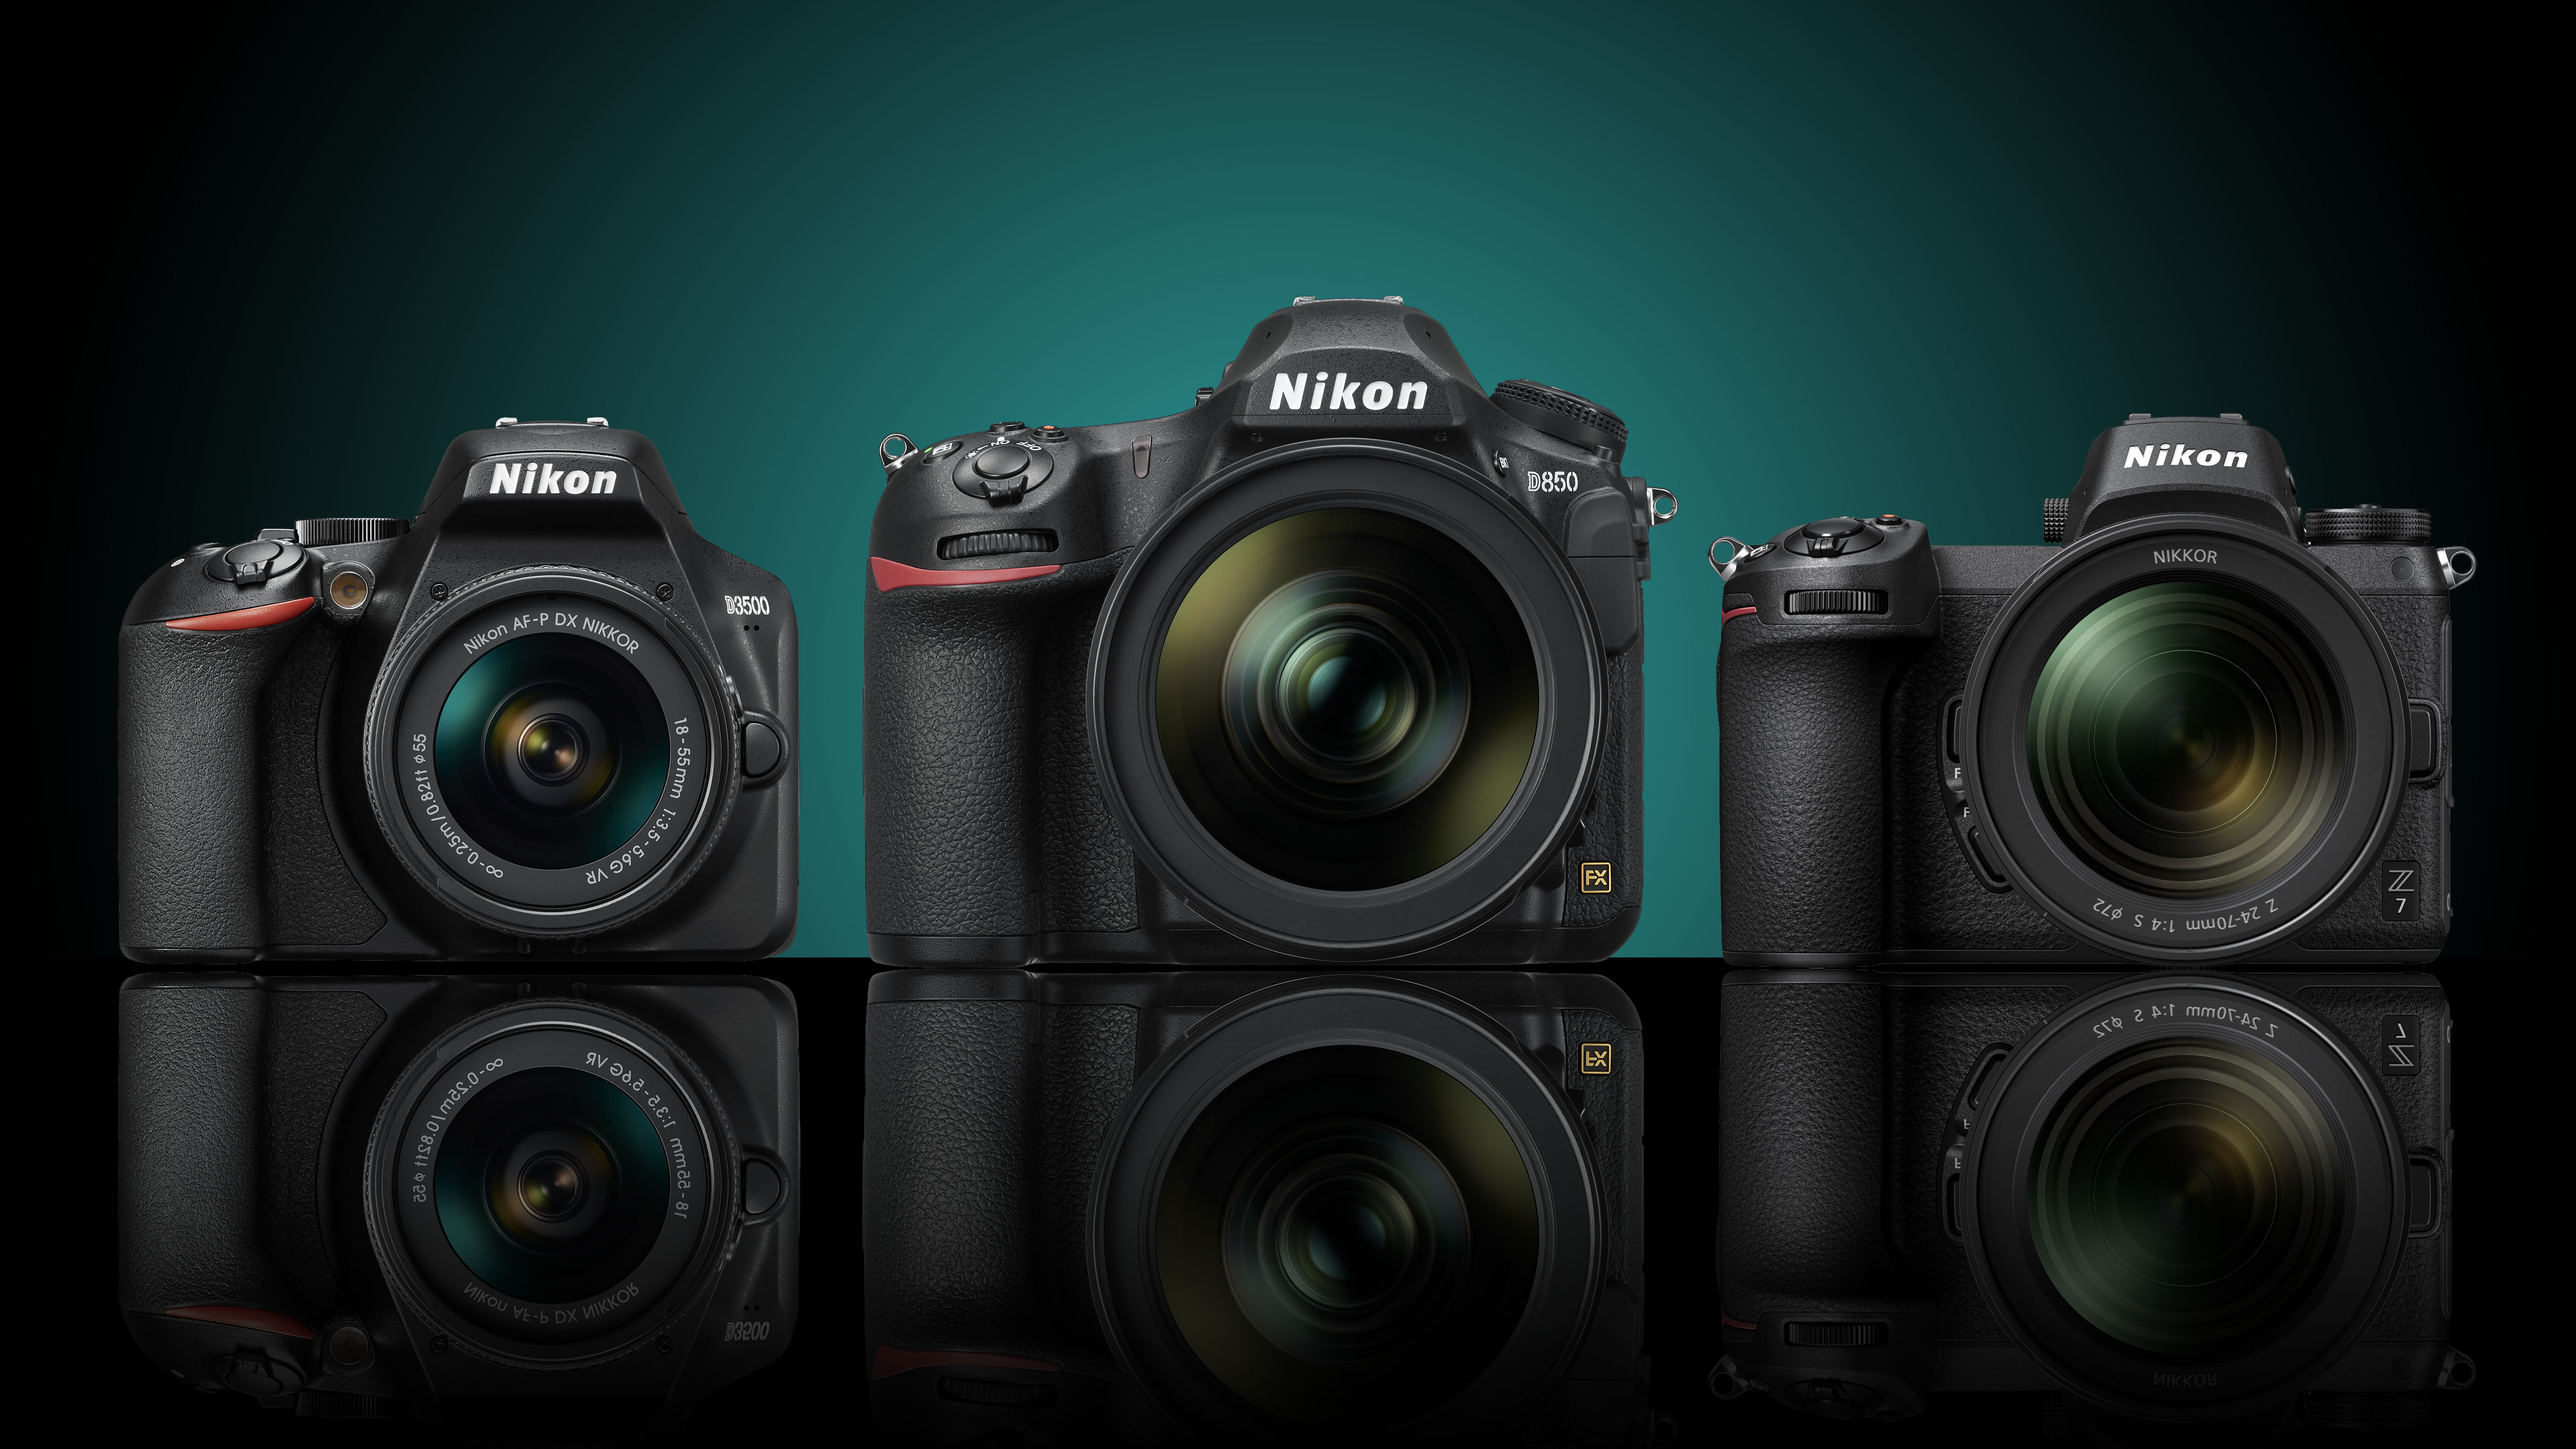 Best Nikon camera 2019: 10 brilliant cameras from Nikon's line-up